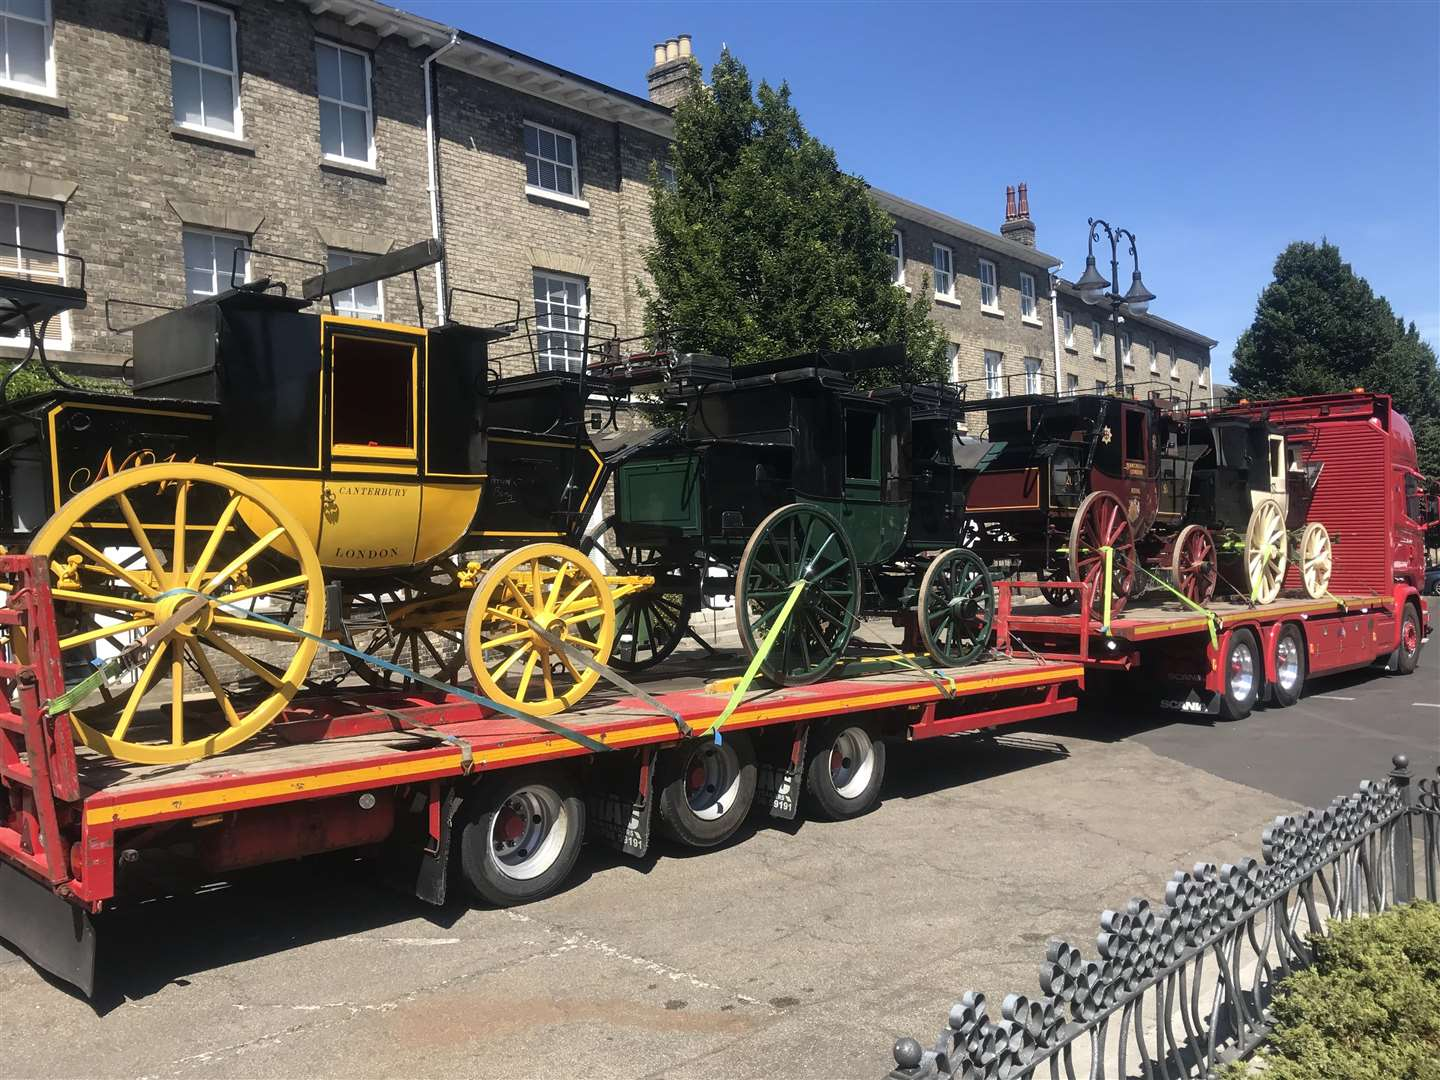 Preparations are underway for the filming of a new David Copperfield film in Bury St Edmunds (2822859)